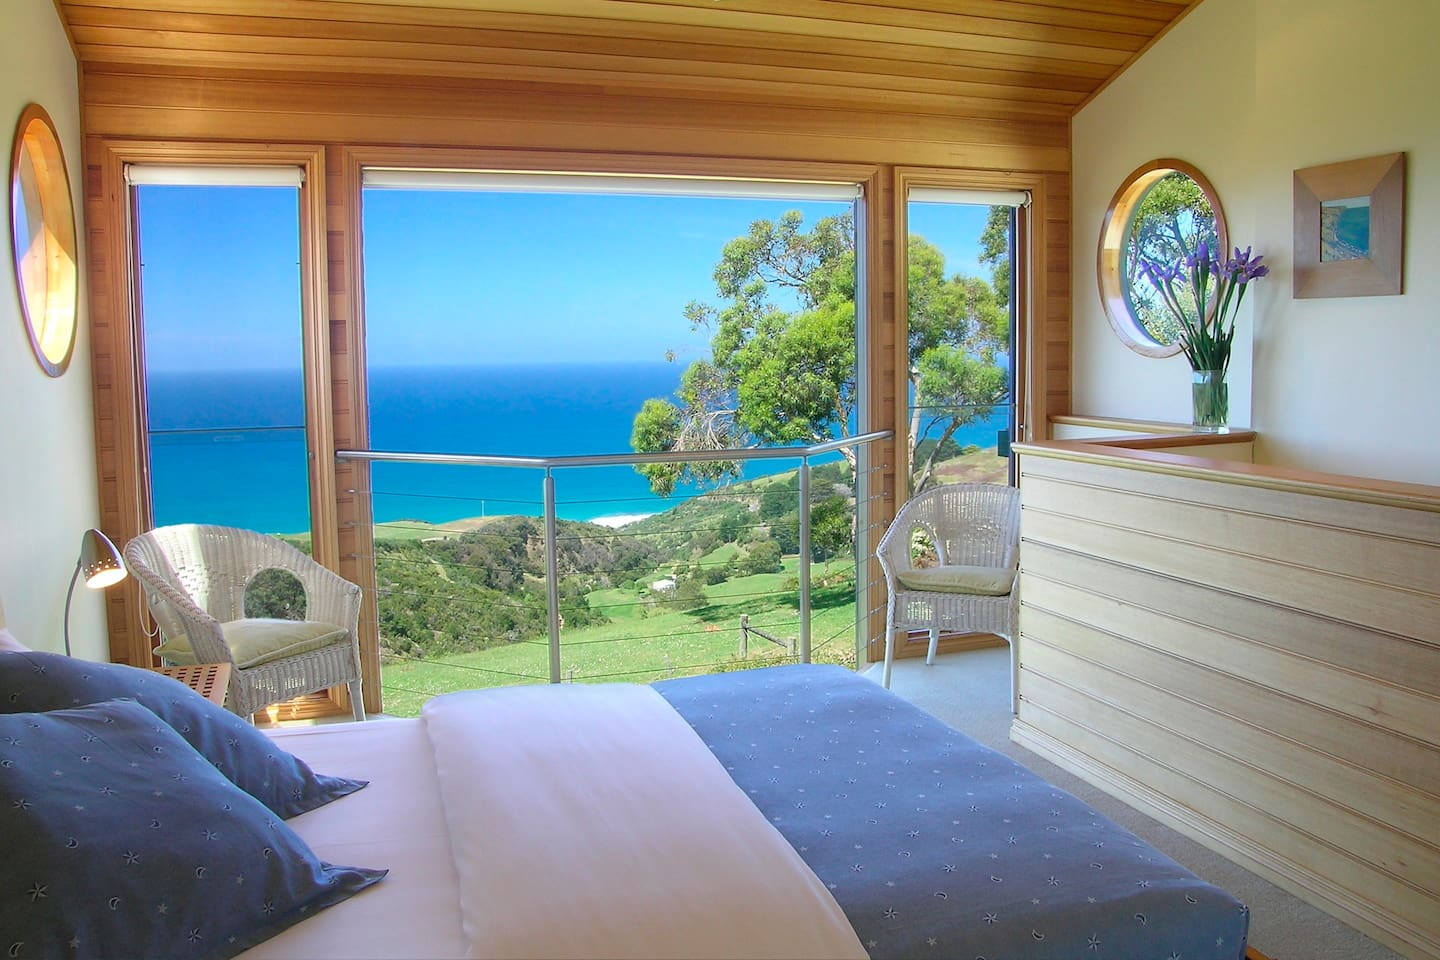 A view to die for from the bed!